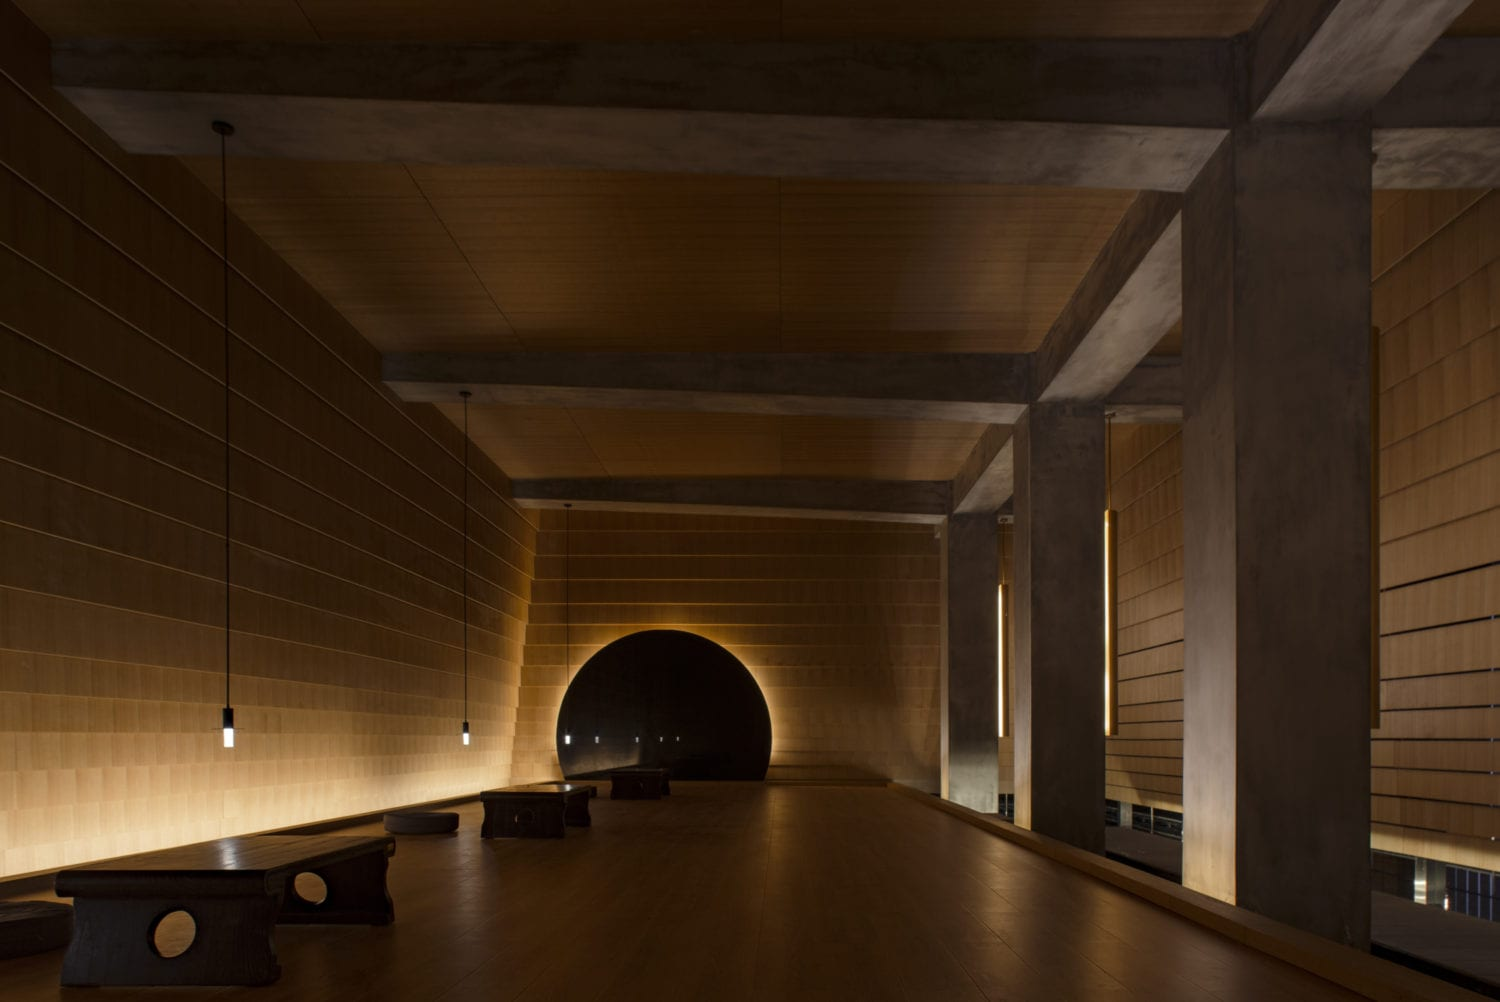 Meditation Hall In Huanghua China By Hil Architects Yellowtrace 12